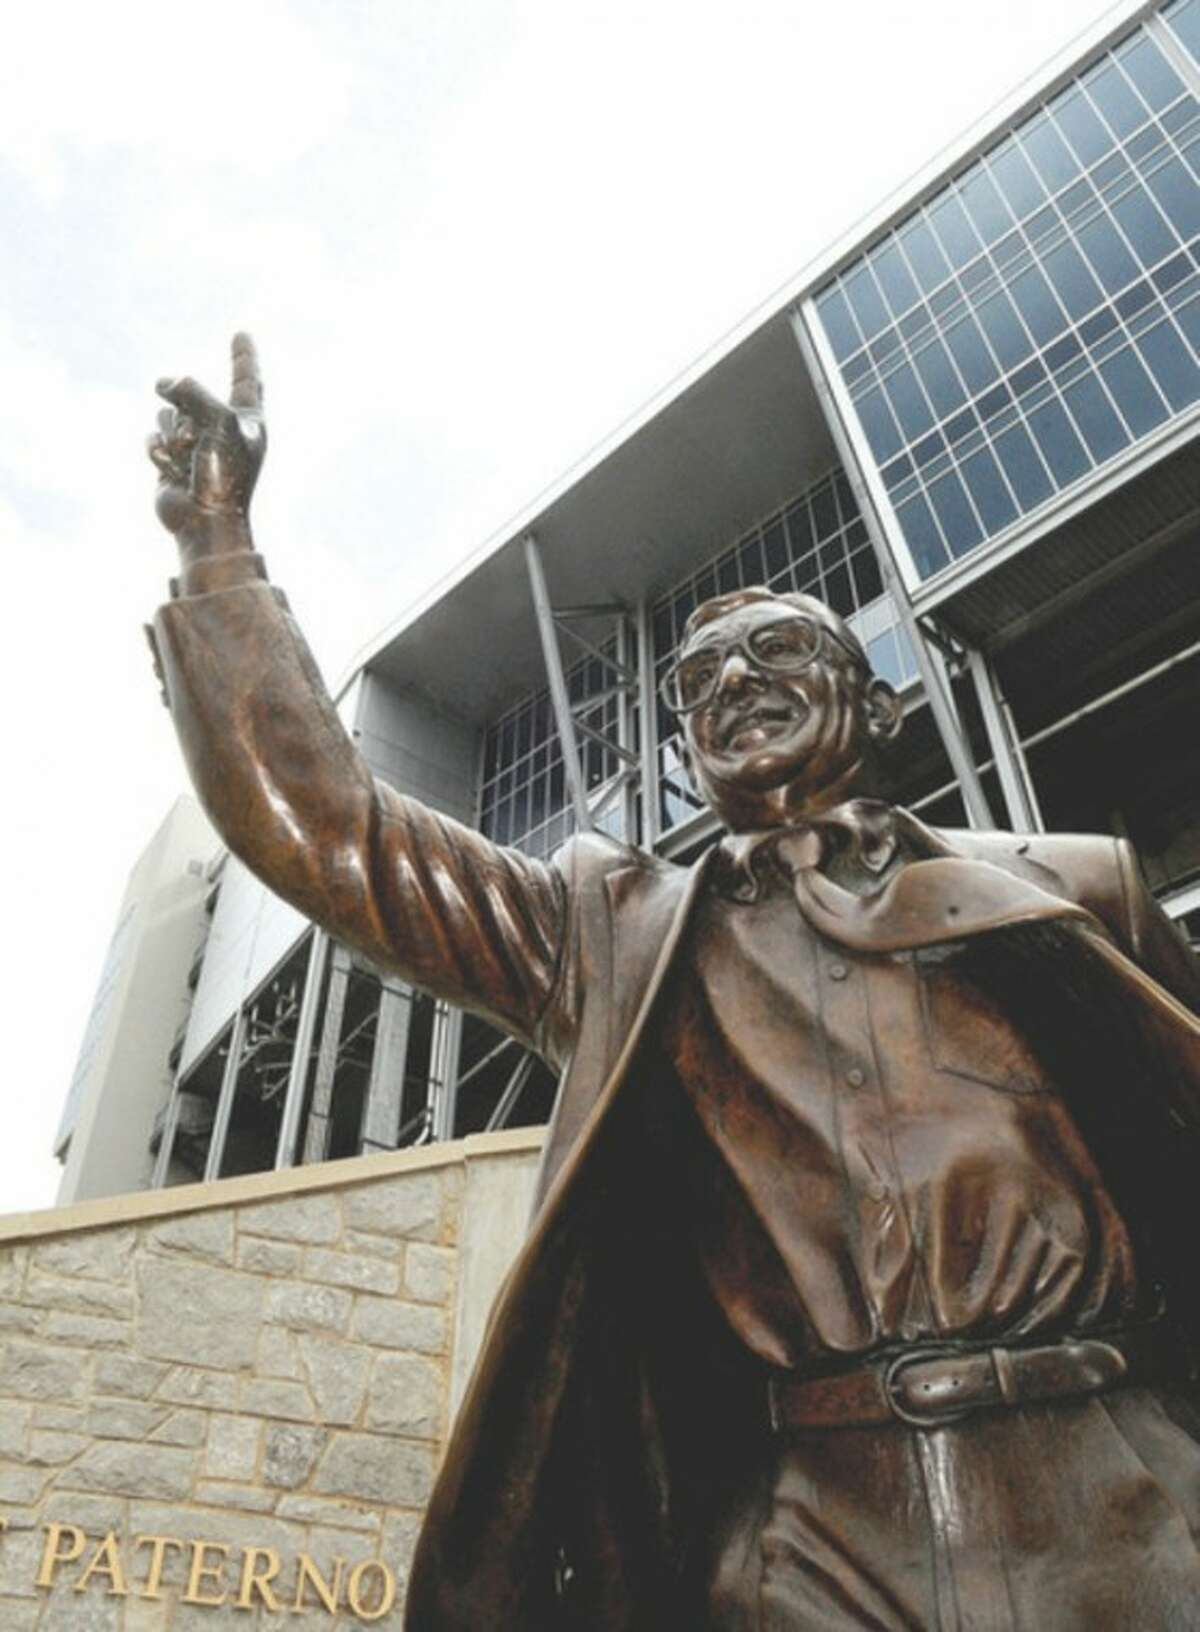 AP photo / Centre Daily Times, Abby Drey A statue of former Penn State head football coach Joe Paterno, which stood outside Beaver Stadium on the Penn State campus in State College, Pa., was removed Sunday.